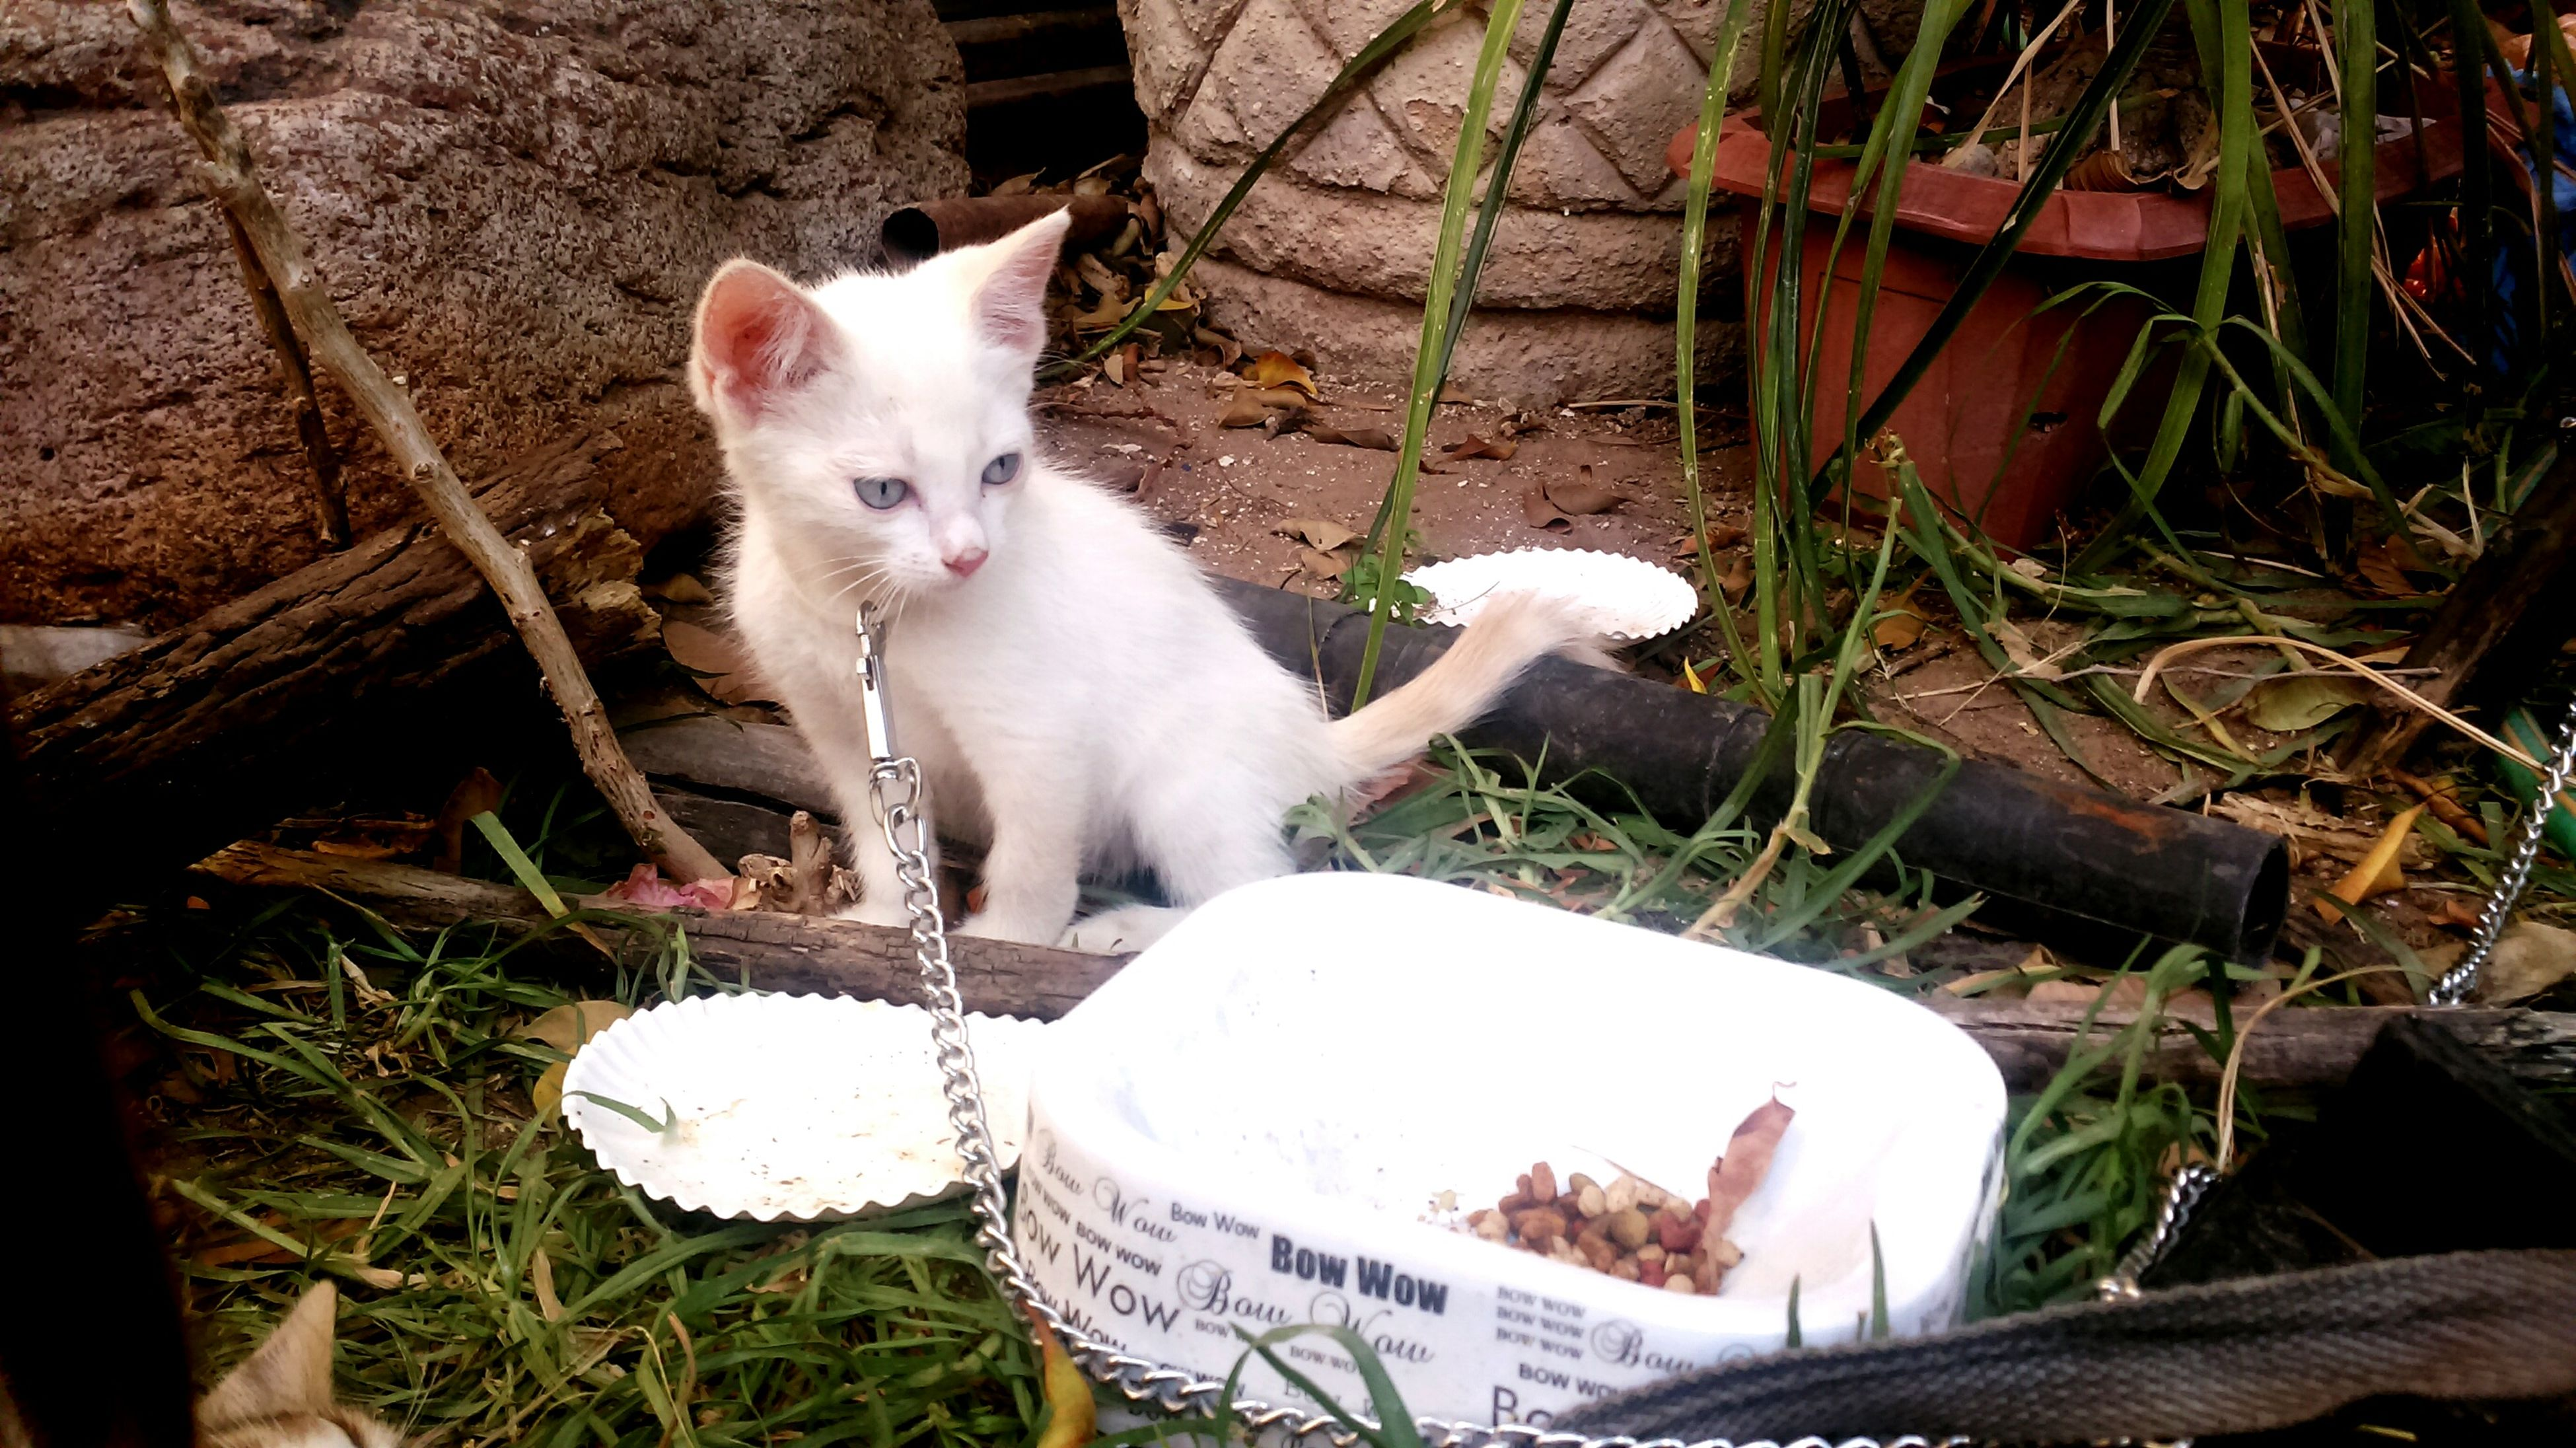 domestic cat, pets, feline, mammal, domestic animals, animal themes, cat, one animal, white color, sitting, no people, portrait, day, outdoors, kitten